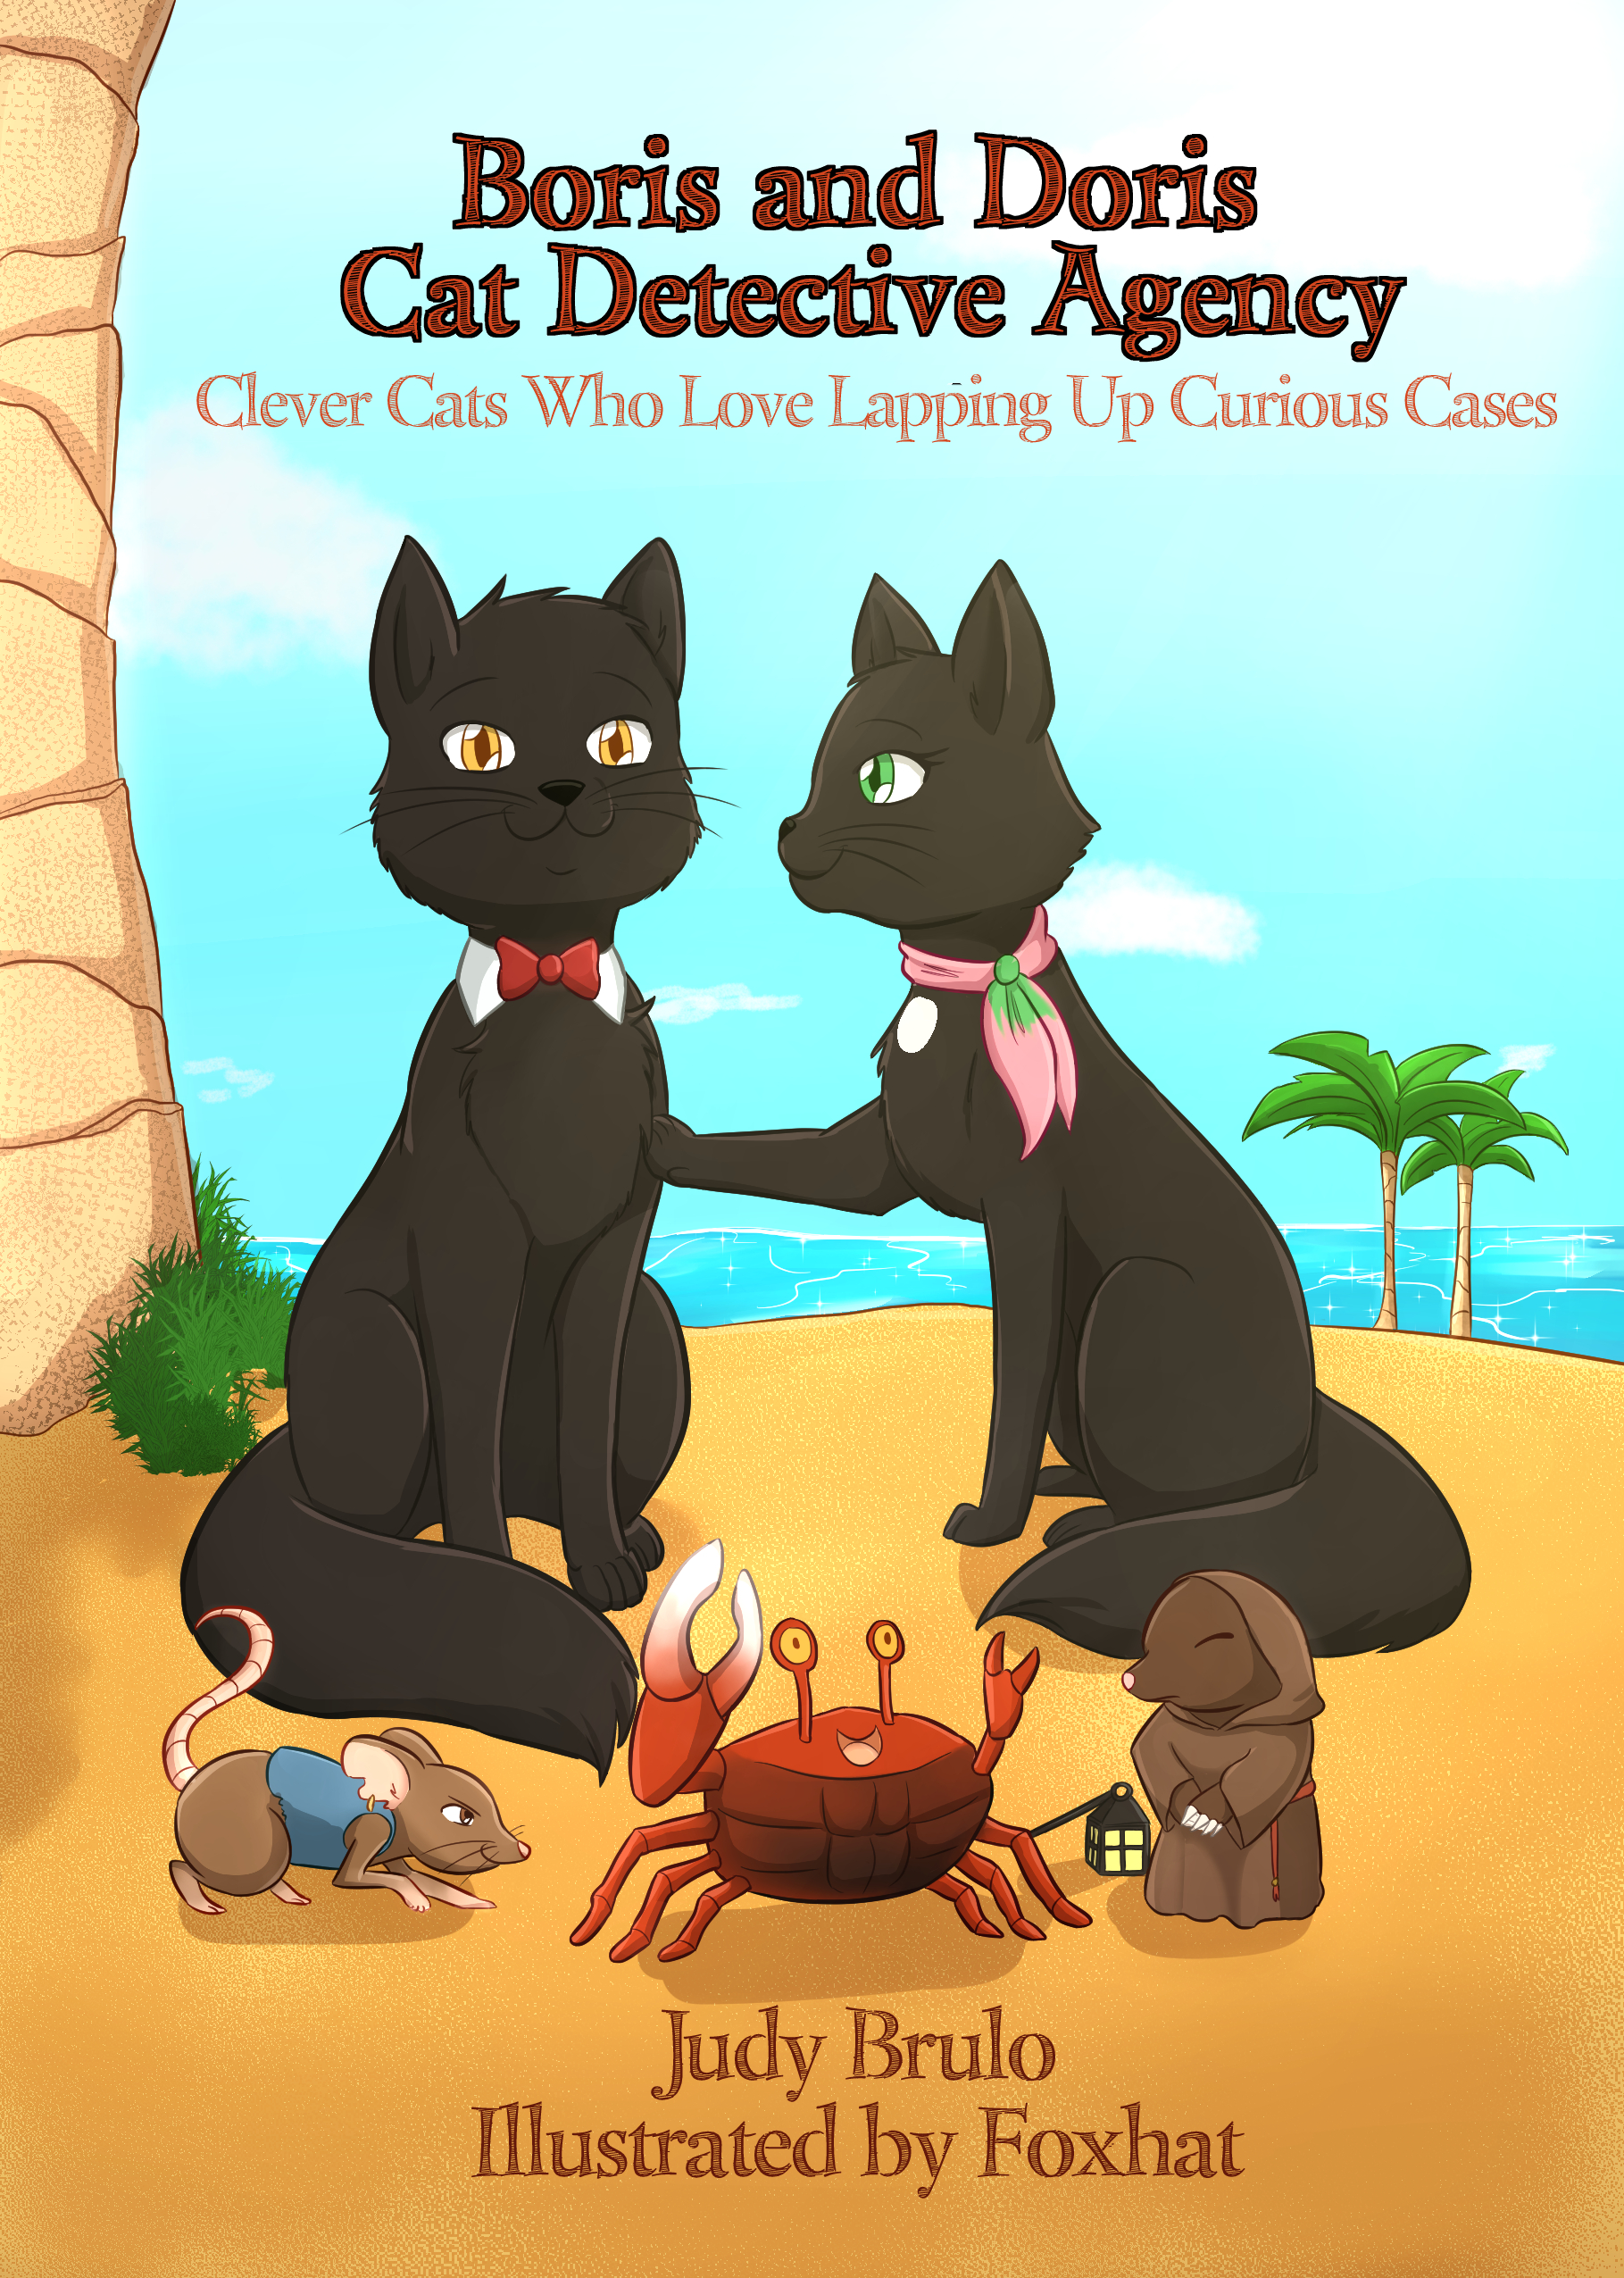 Boris and Doris Cat Detective Agency (pub. Brulo Books 2019)